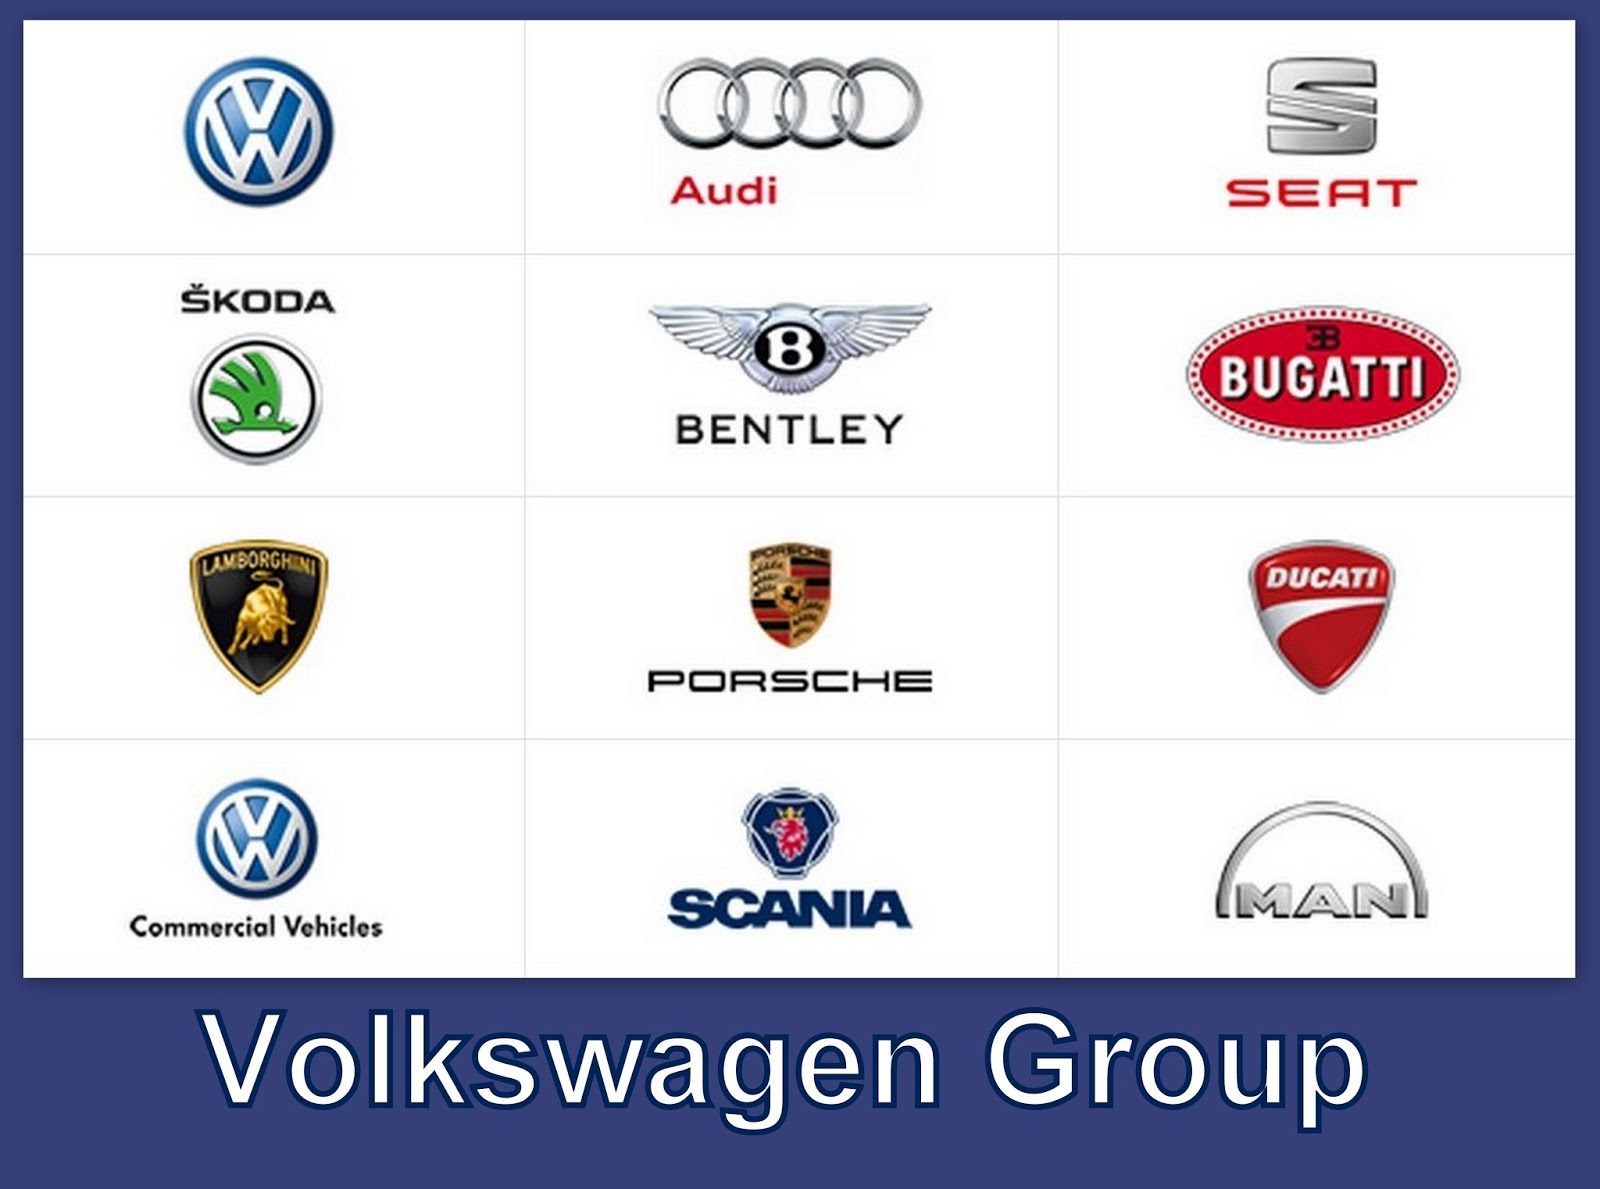 What Brands Does Volkswagen Own >> VW Group, Successfully Managing 12 Brands and In Search ...